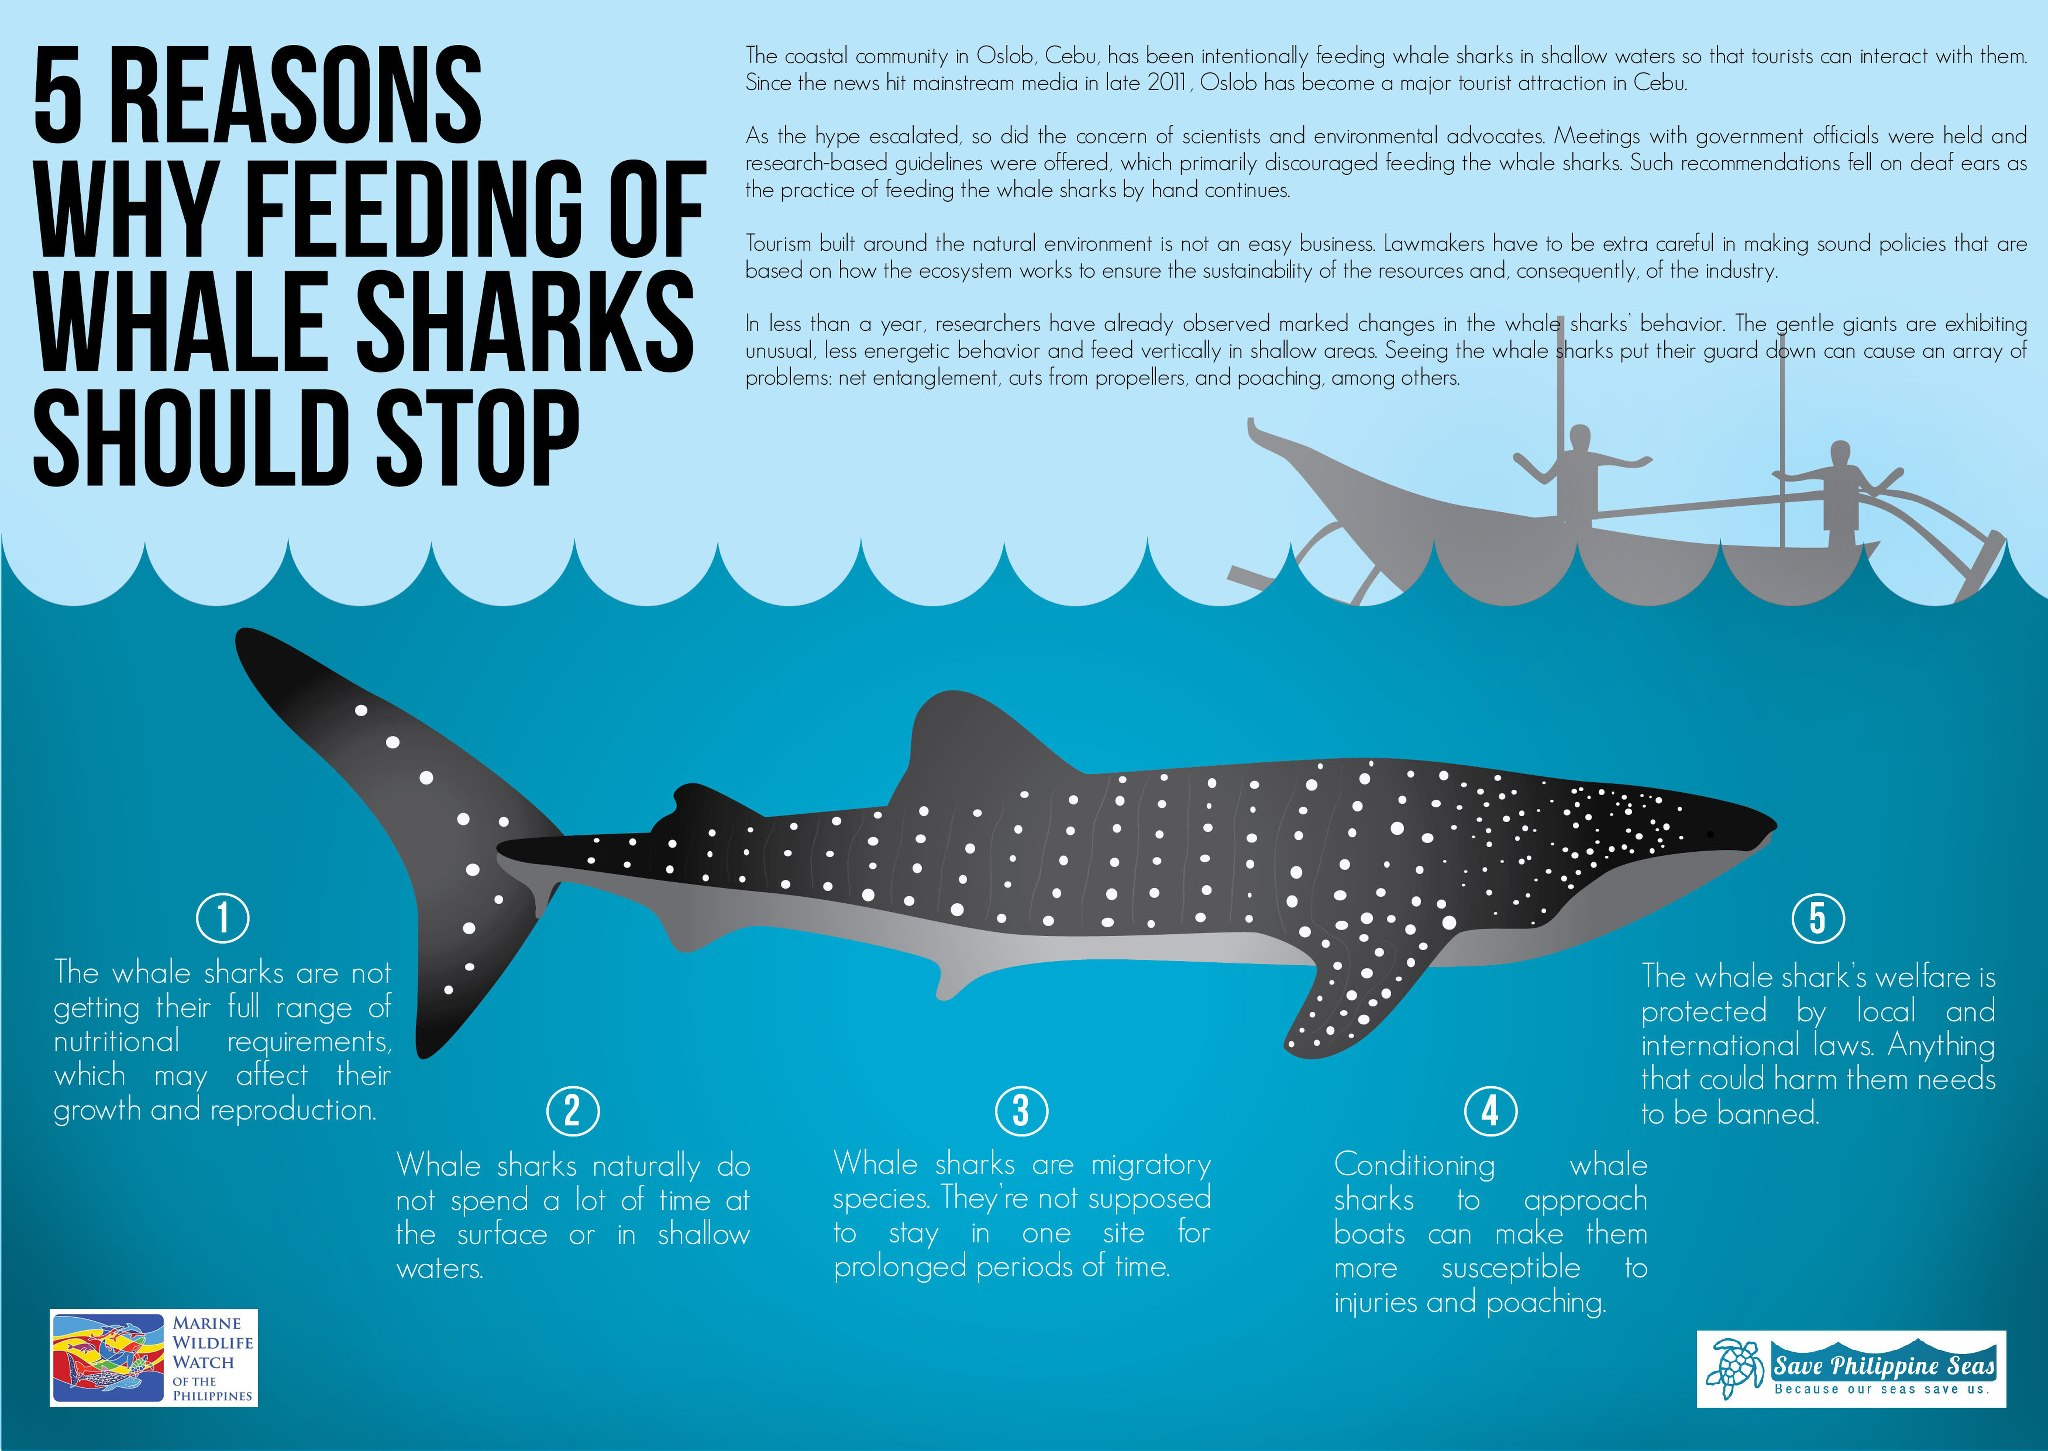 5 Reasons Why Feeding Whale Sharks Should Stop